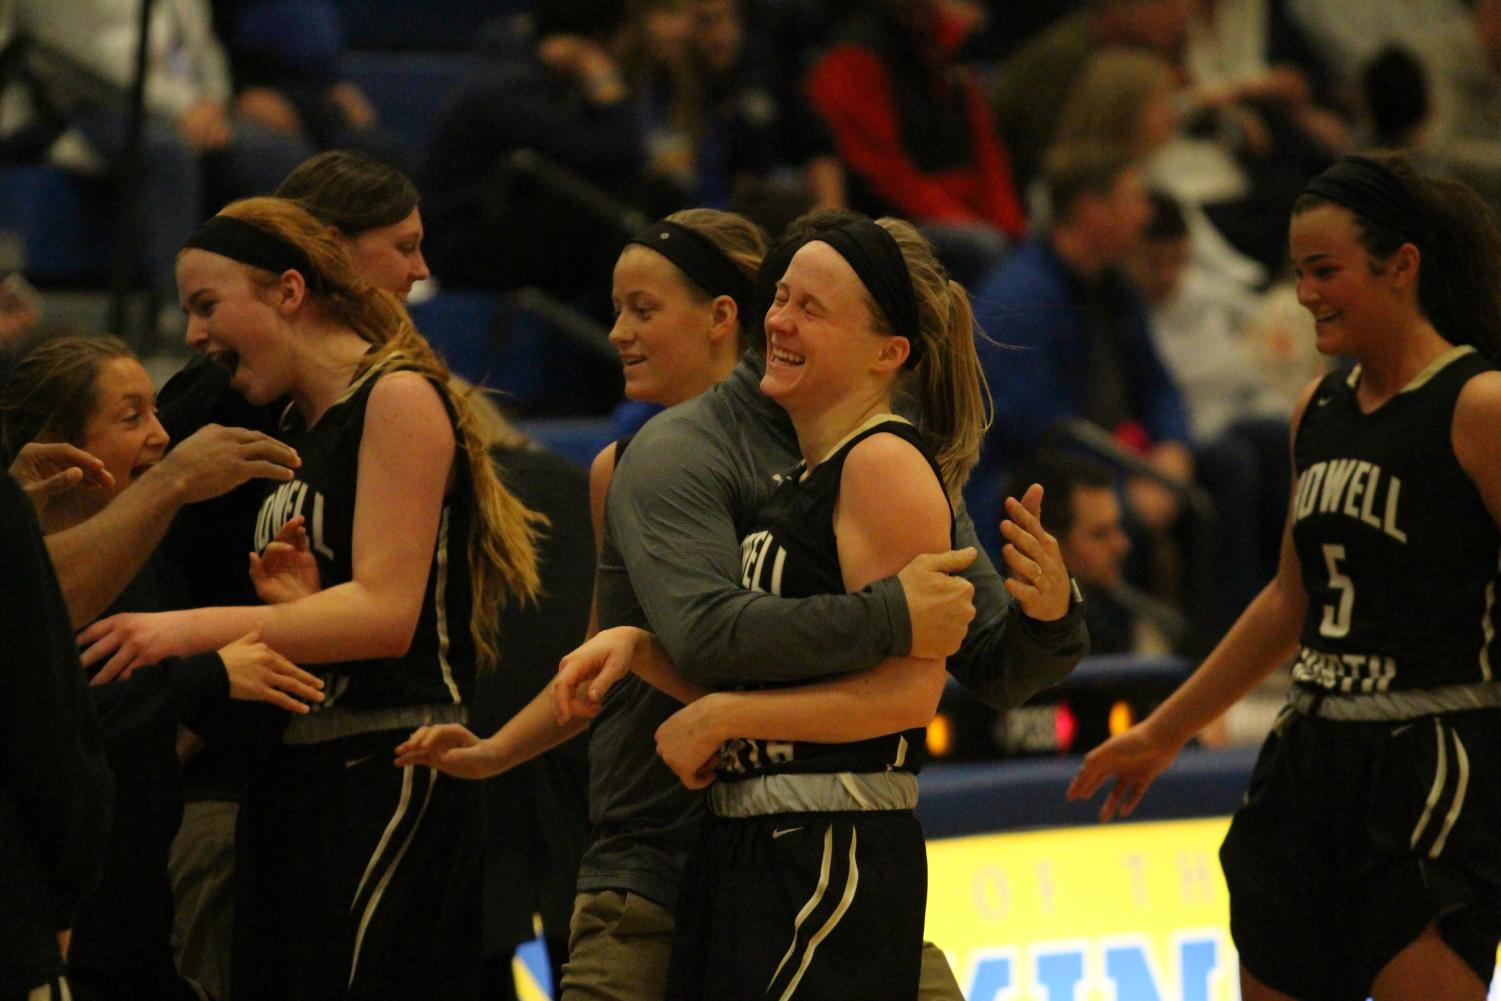 The Lady Knights celebrate  after a good basket against Francis Howell High on 1/19.